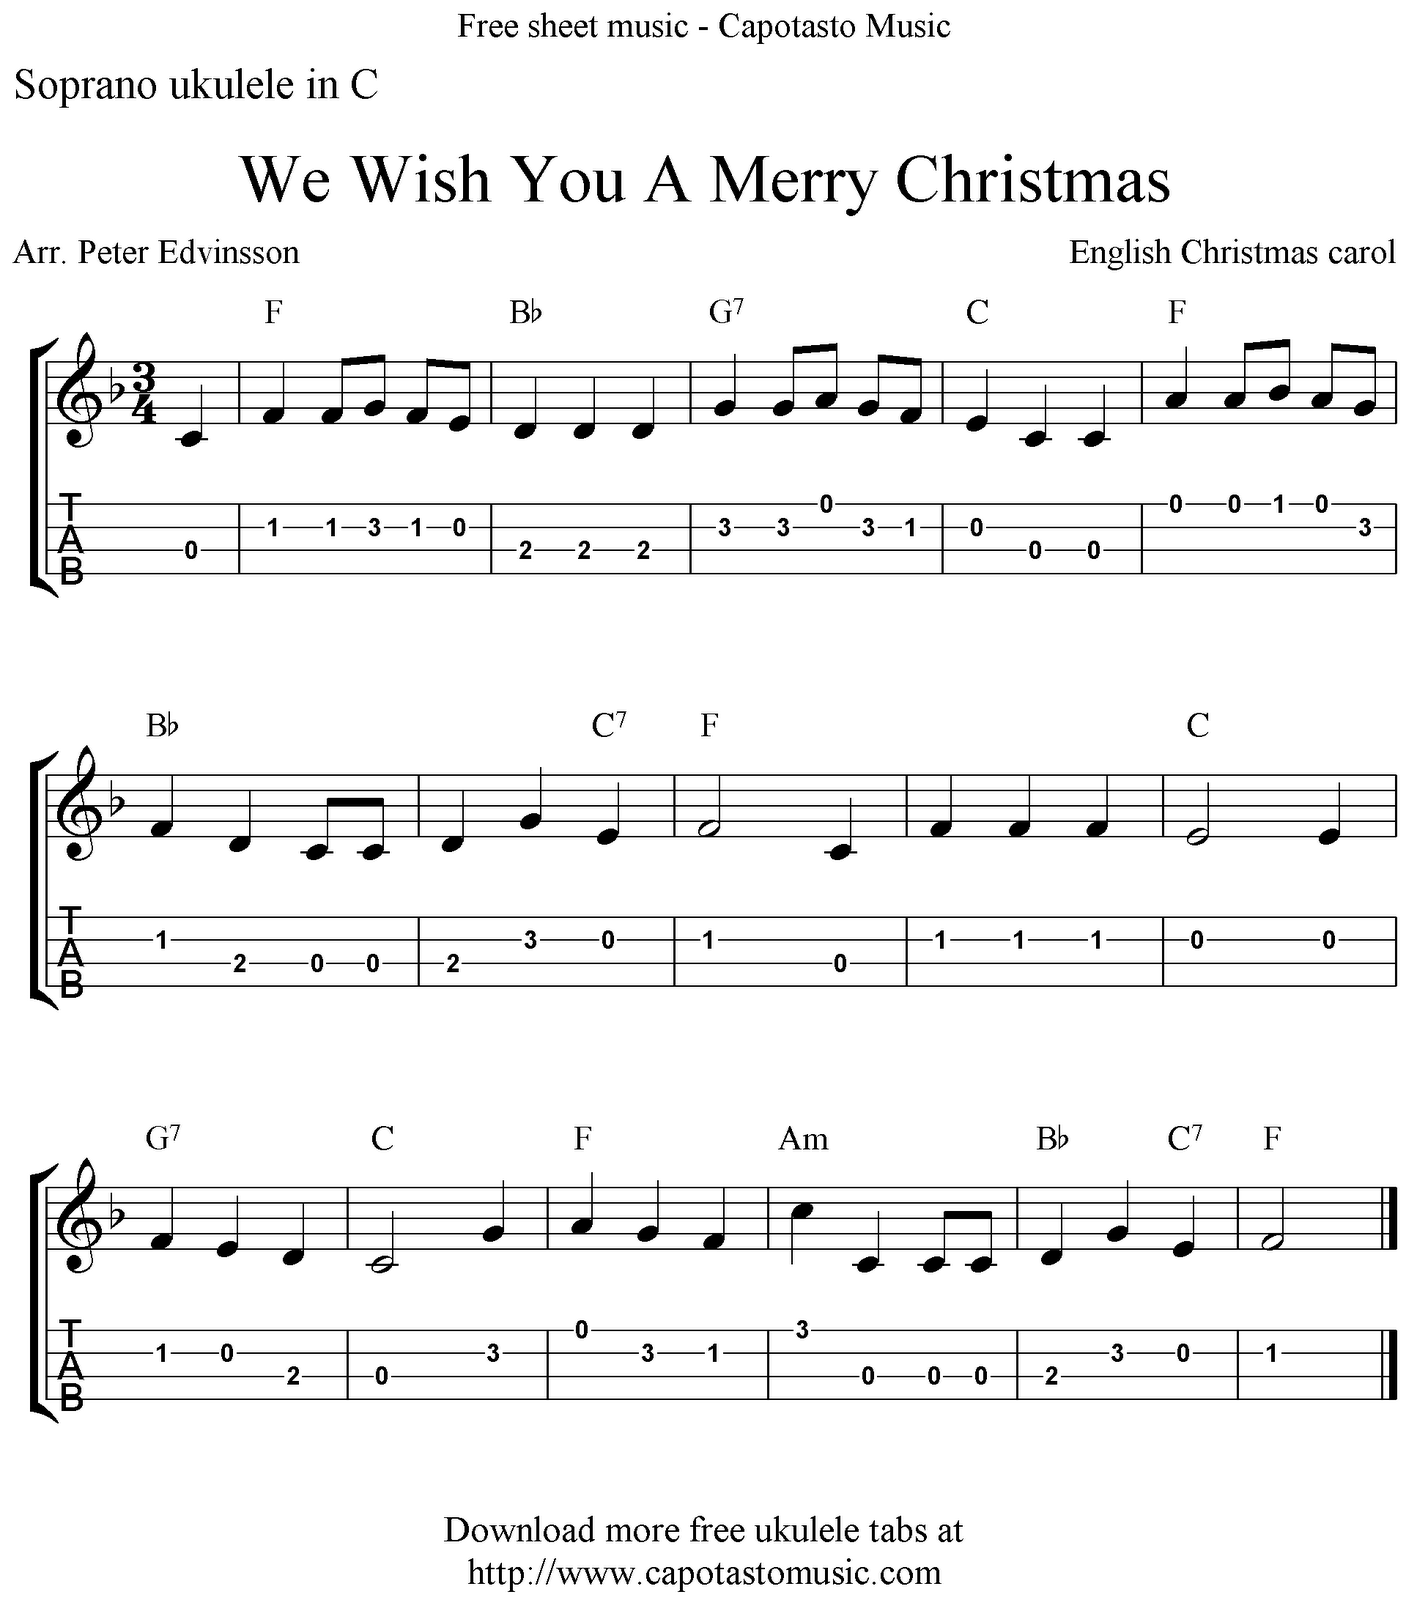 We Wish You A Merry Christmas Ukulele Chords.We Wish You A Merry Christmas Free Christmas Ukulele Tabs